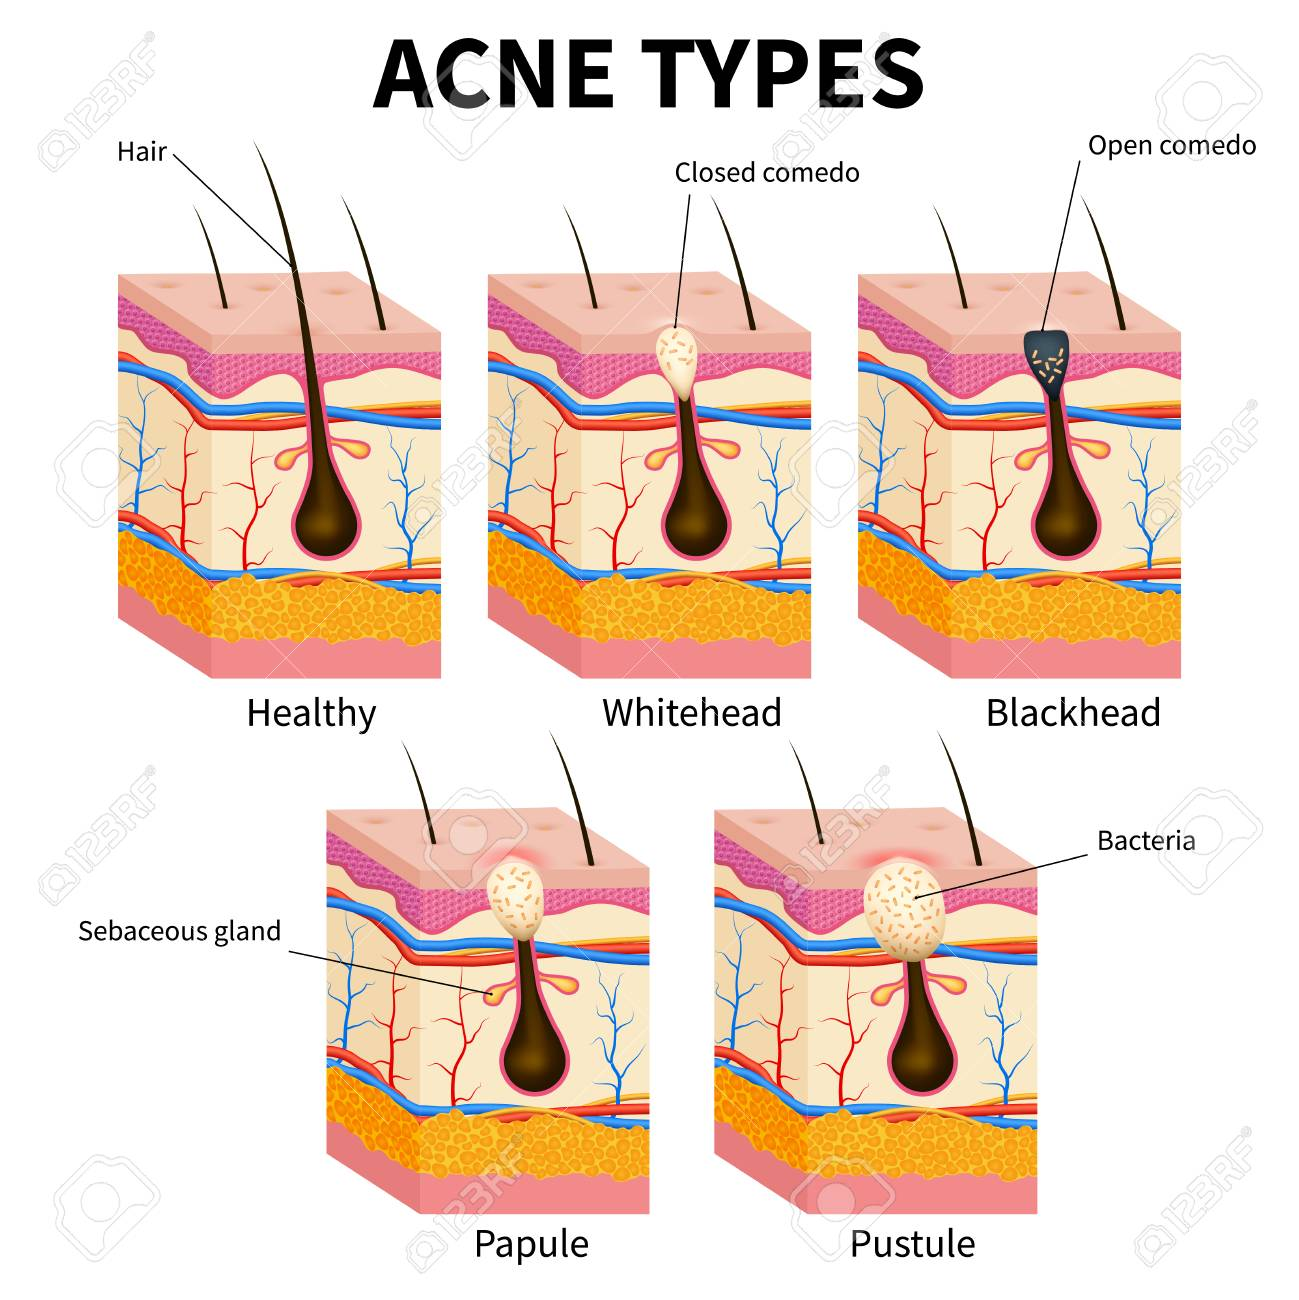 hight resolution of acne types pimple skin diseases anatomy medical vector diagram illustration of follicle and pimple